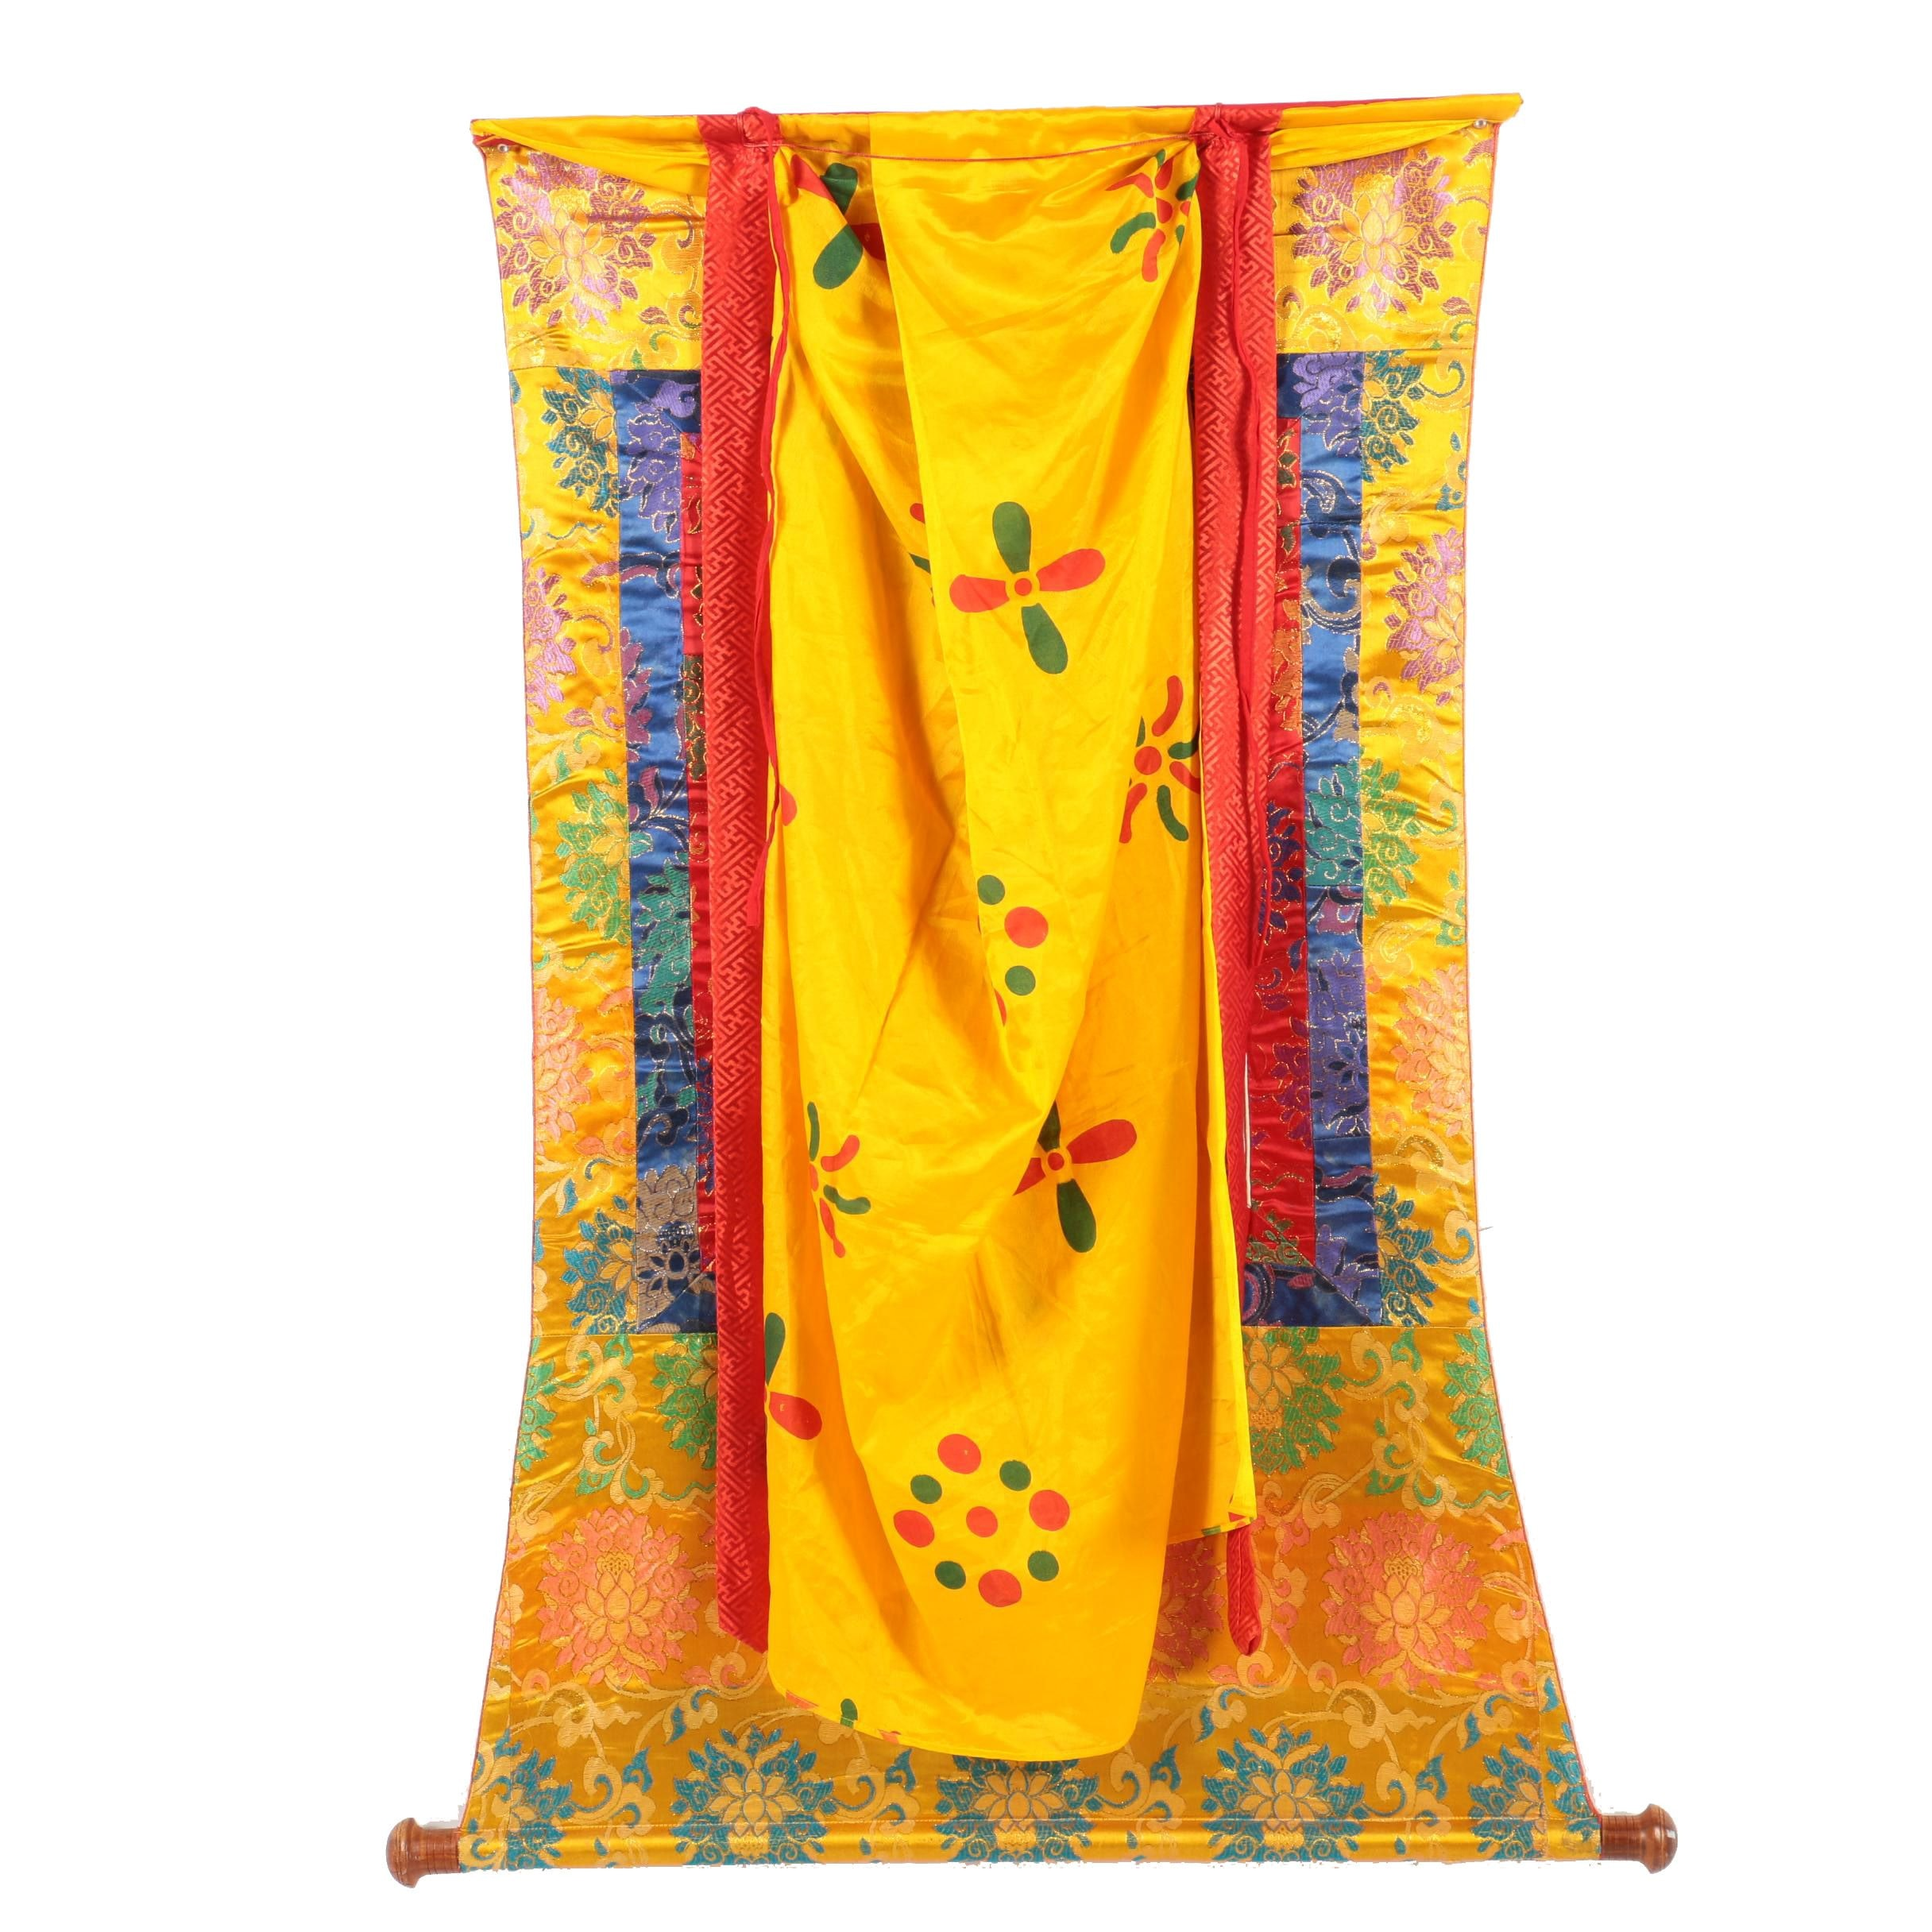 Fabric Wall Hanging Featuring Tibetan Buddhism Guru Rinpoche